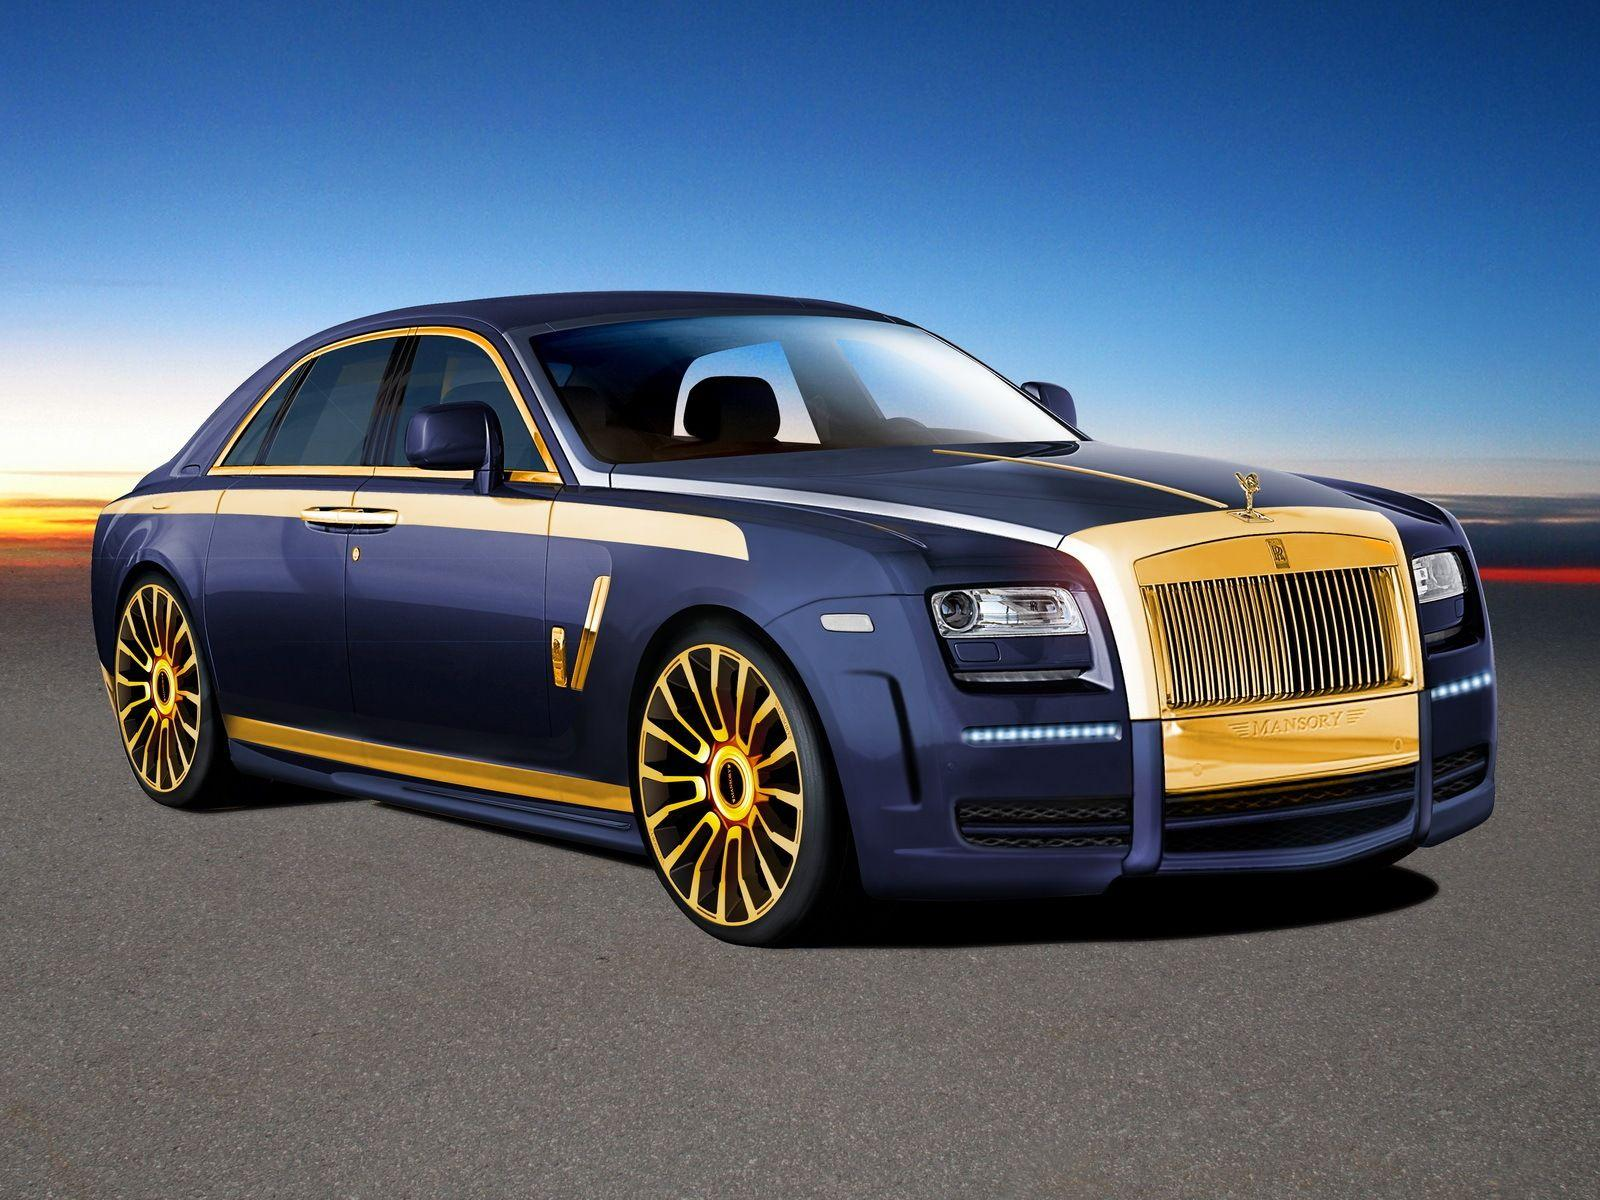 Rolls Royce Ghost HD Wallpaper, Backgrounds Image